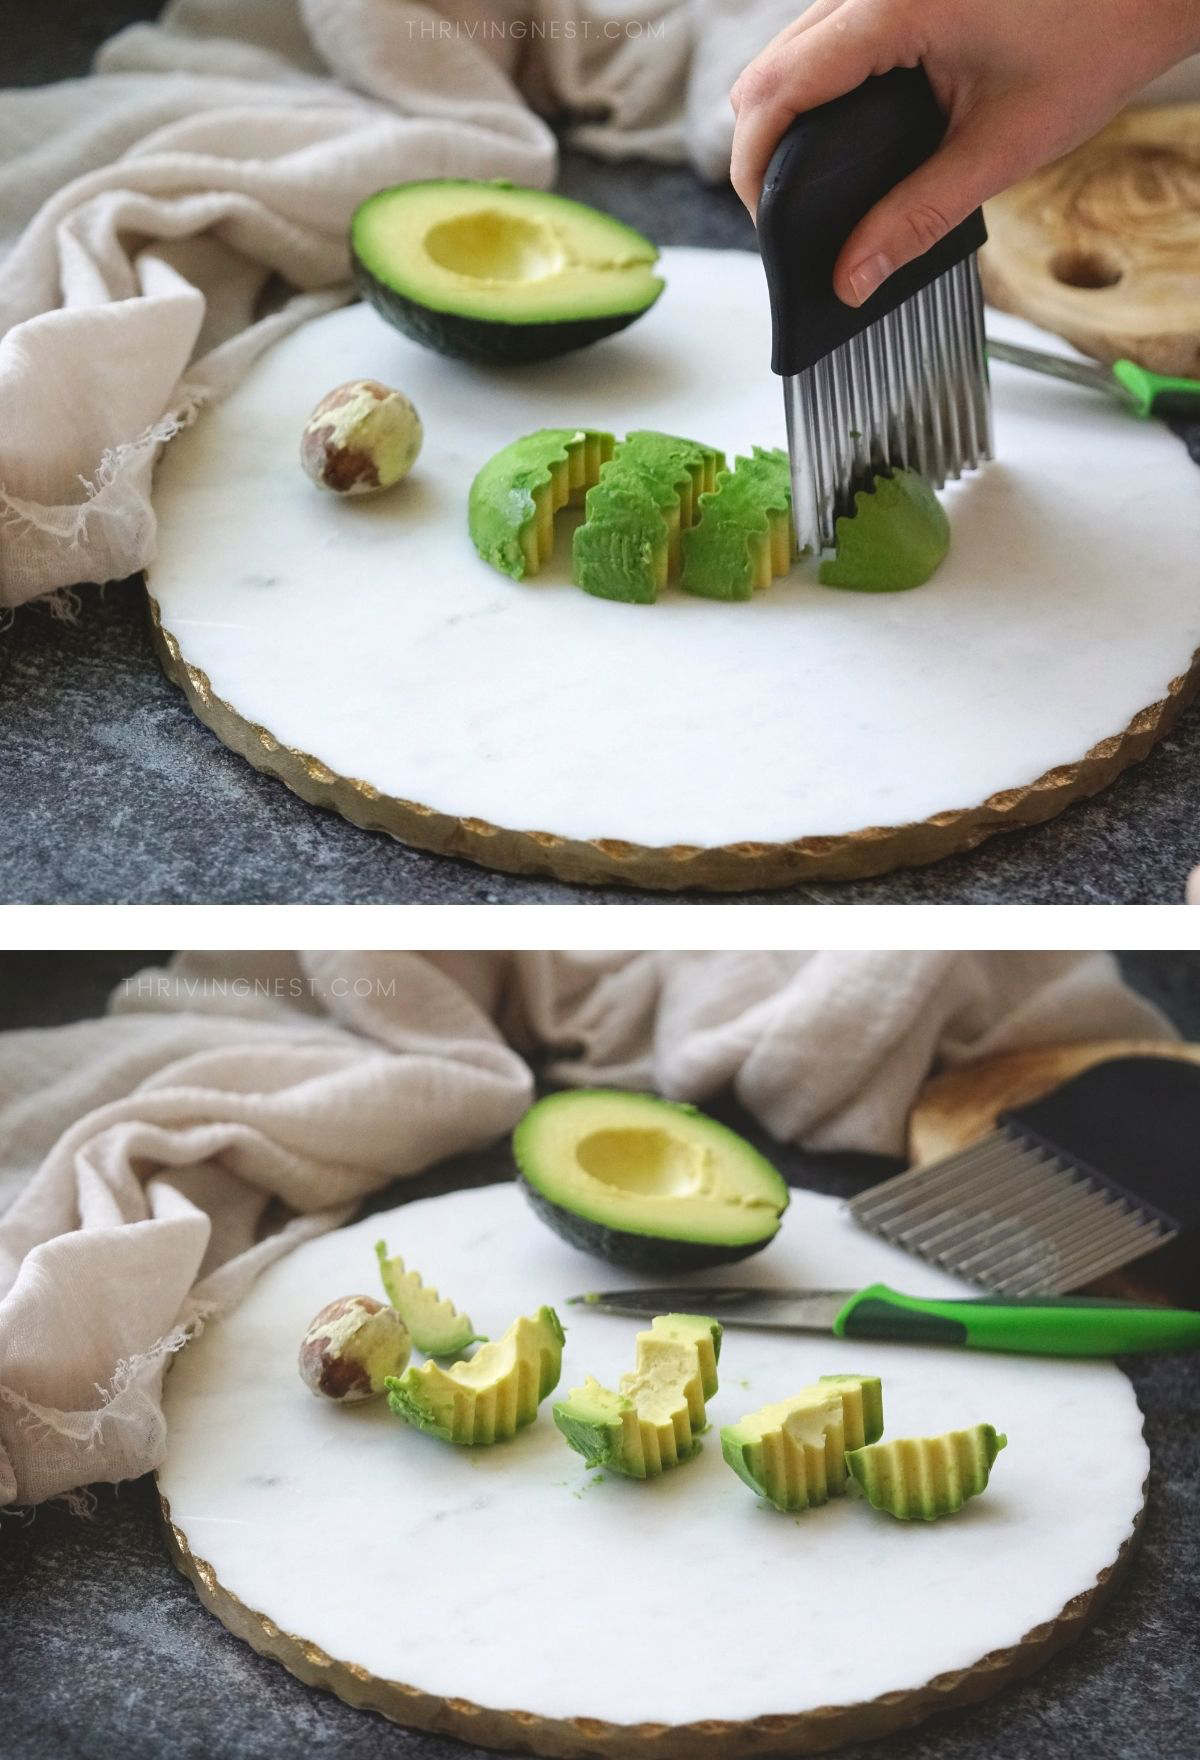 How to cut avocado for babies, process shots.